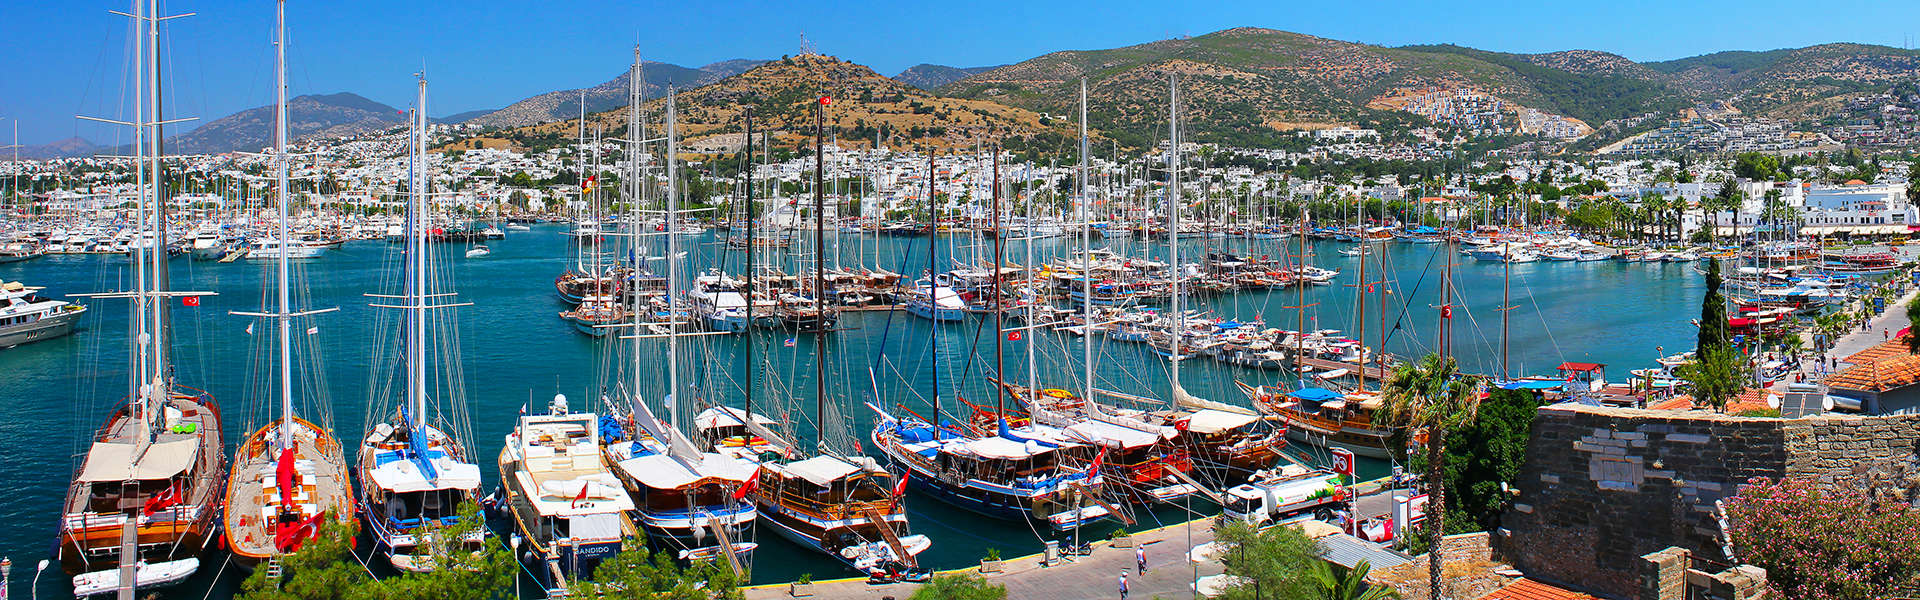 Panorama of the waterfront city of Bodrum in Turkey